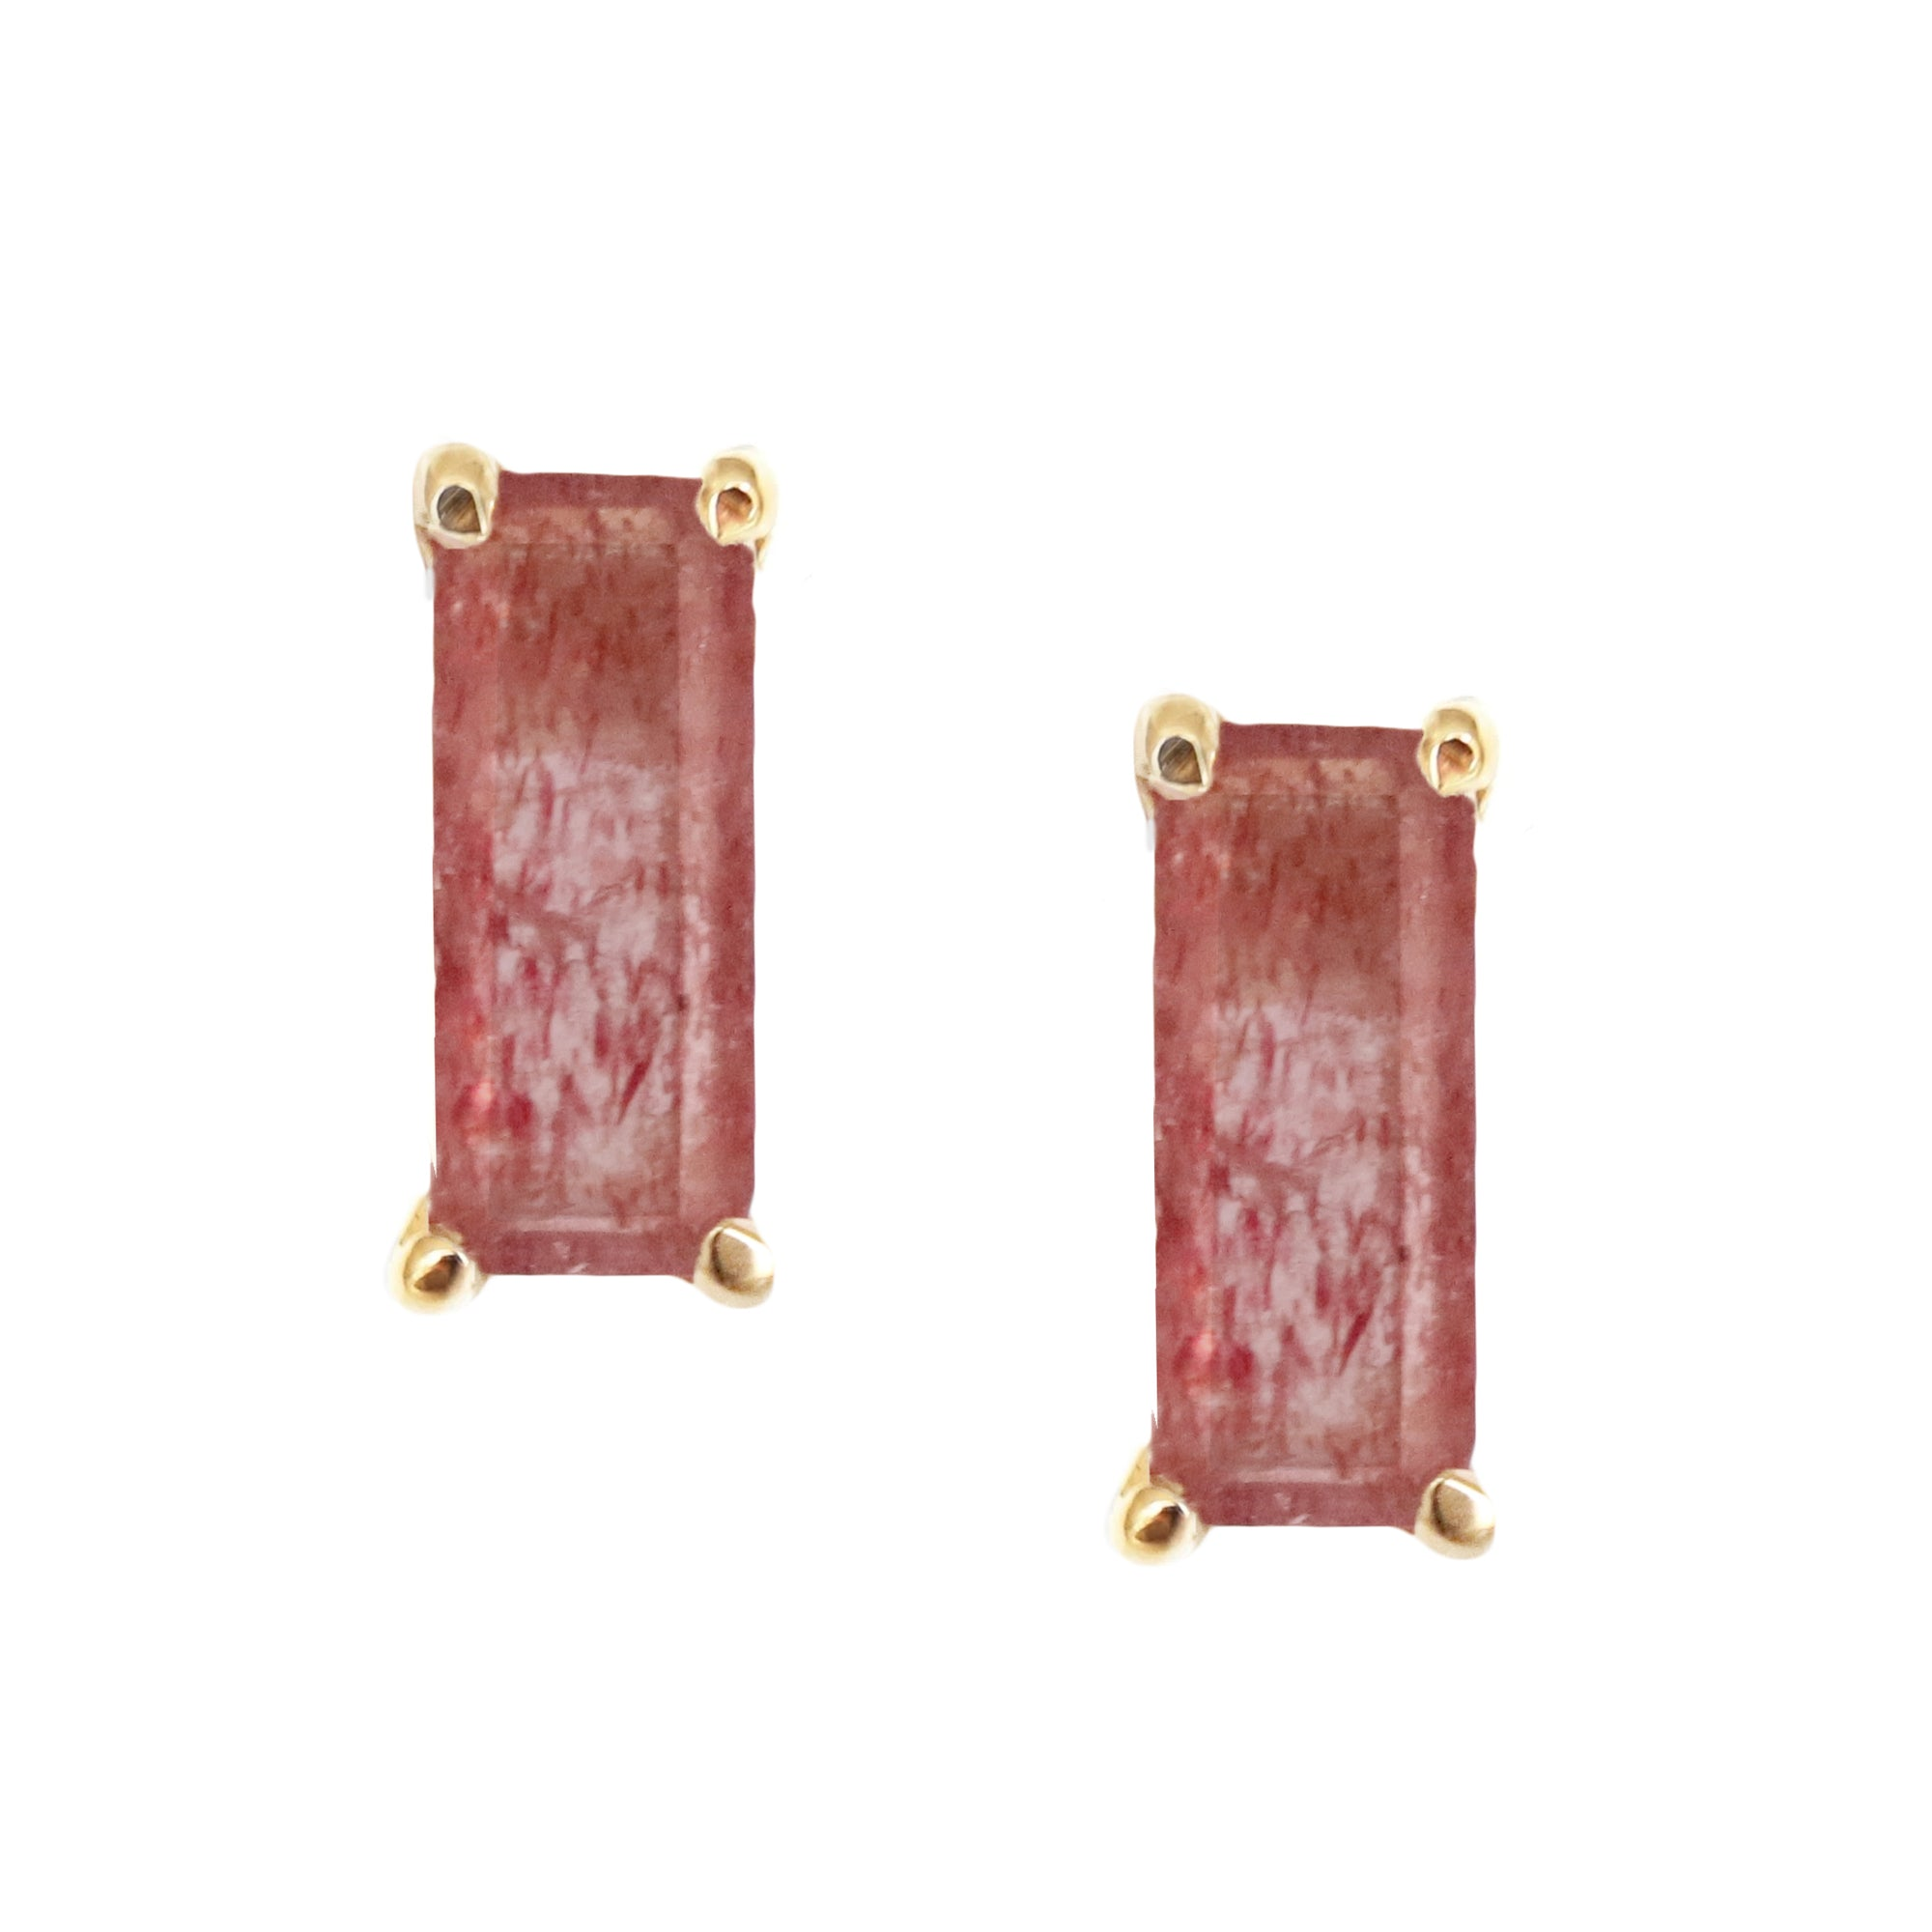 DAY 8 - LOYAL STUD EARRINGS - CRANBERRY QUARTZ & GOLD